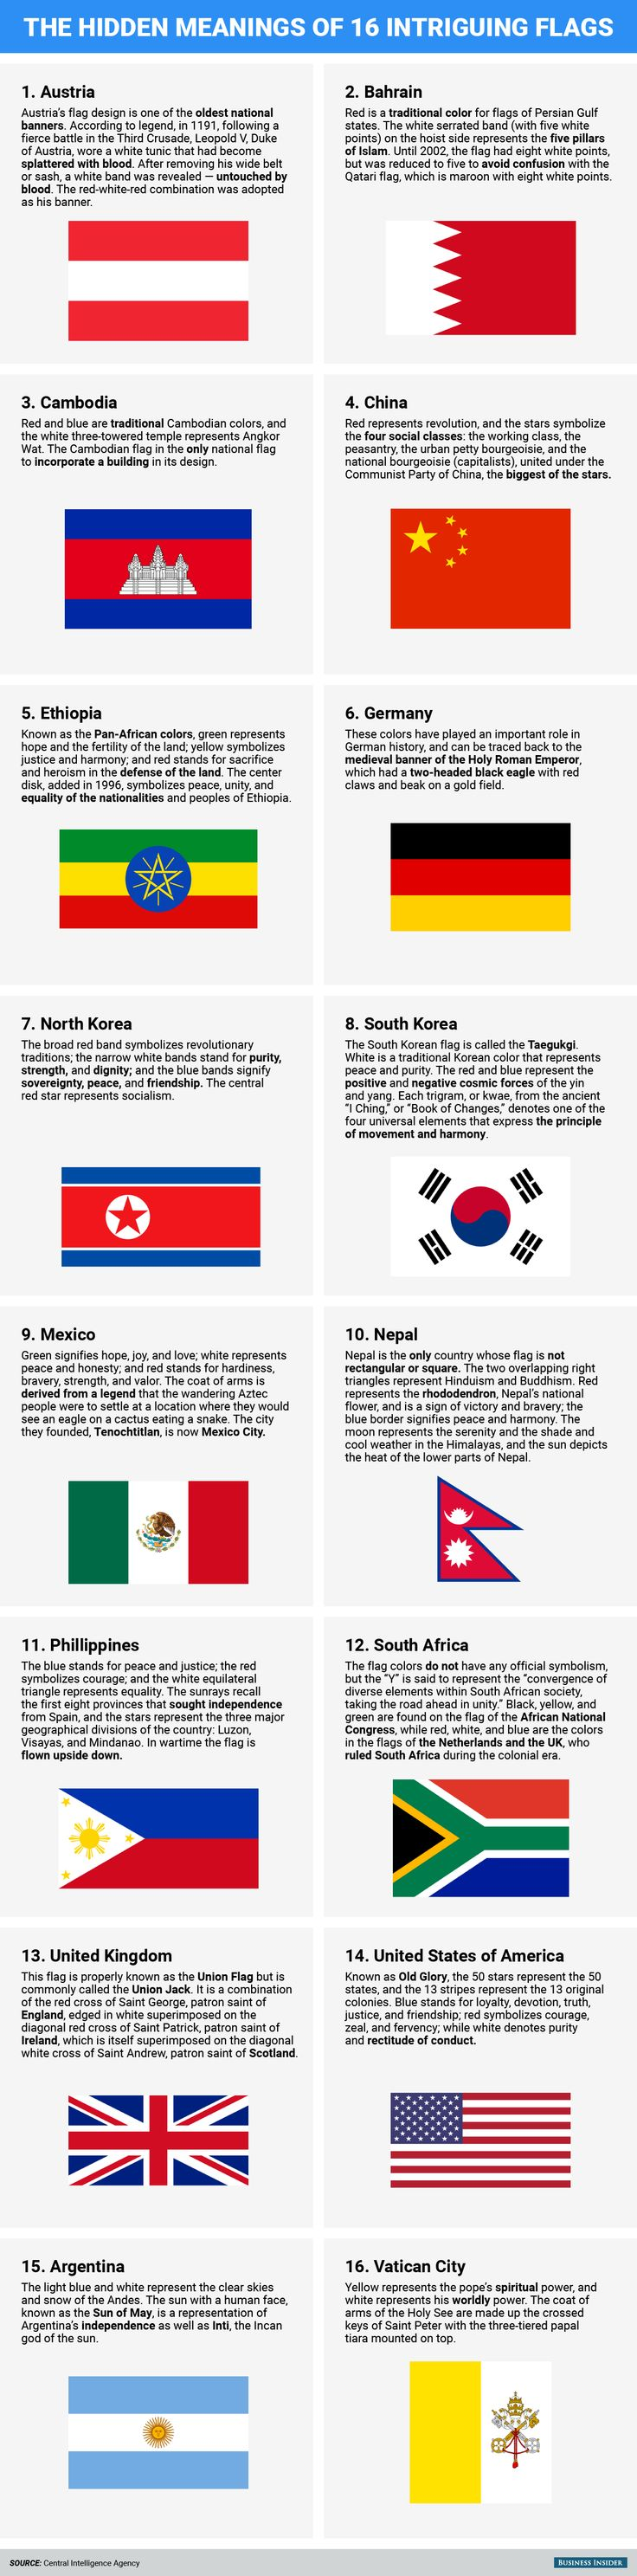 16 intriguing world flags and their hidden meanings - Our national flags are a…